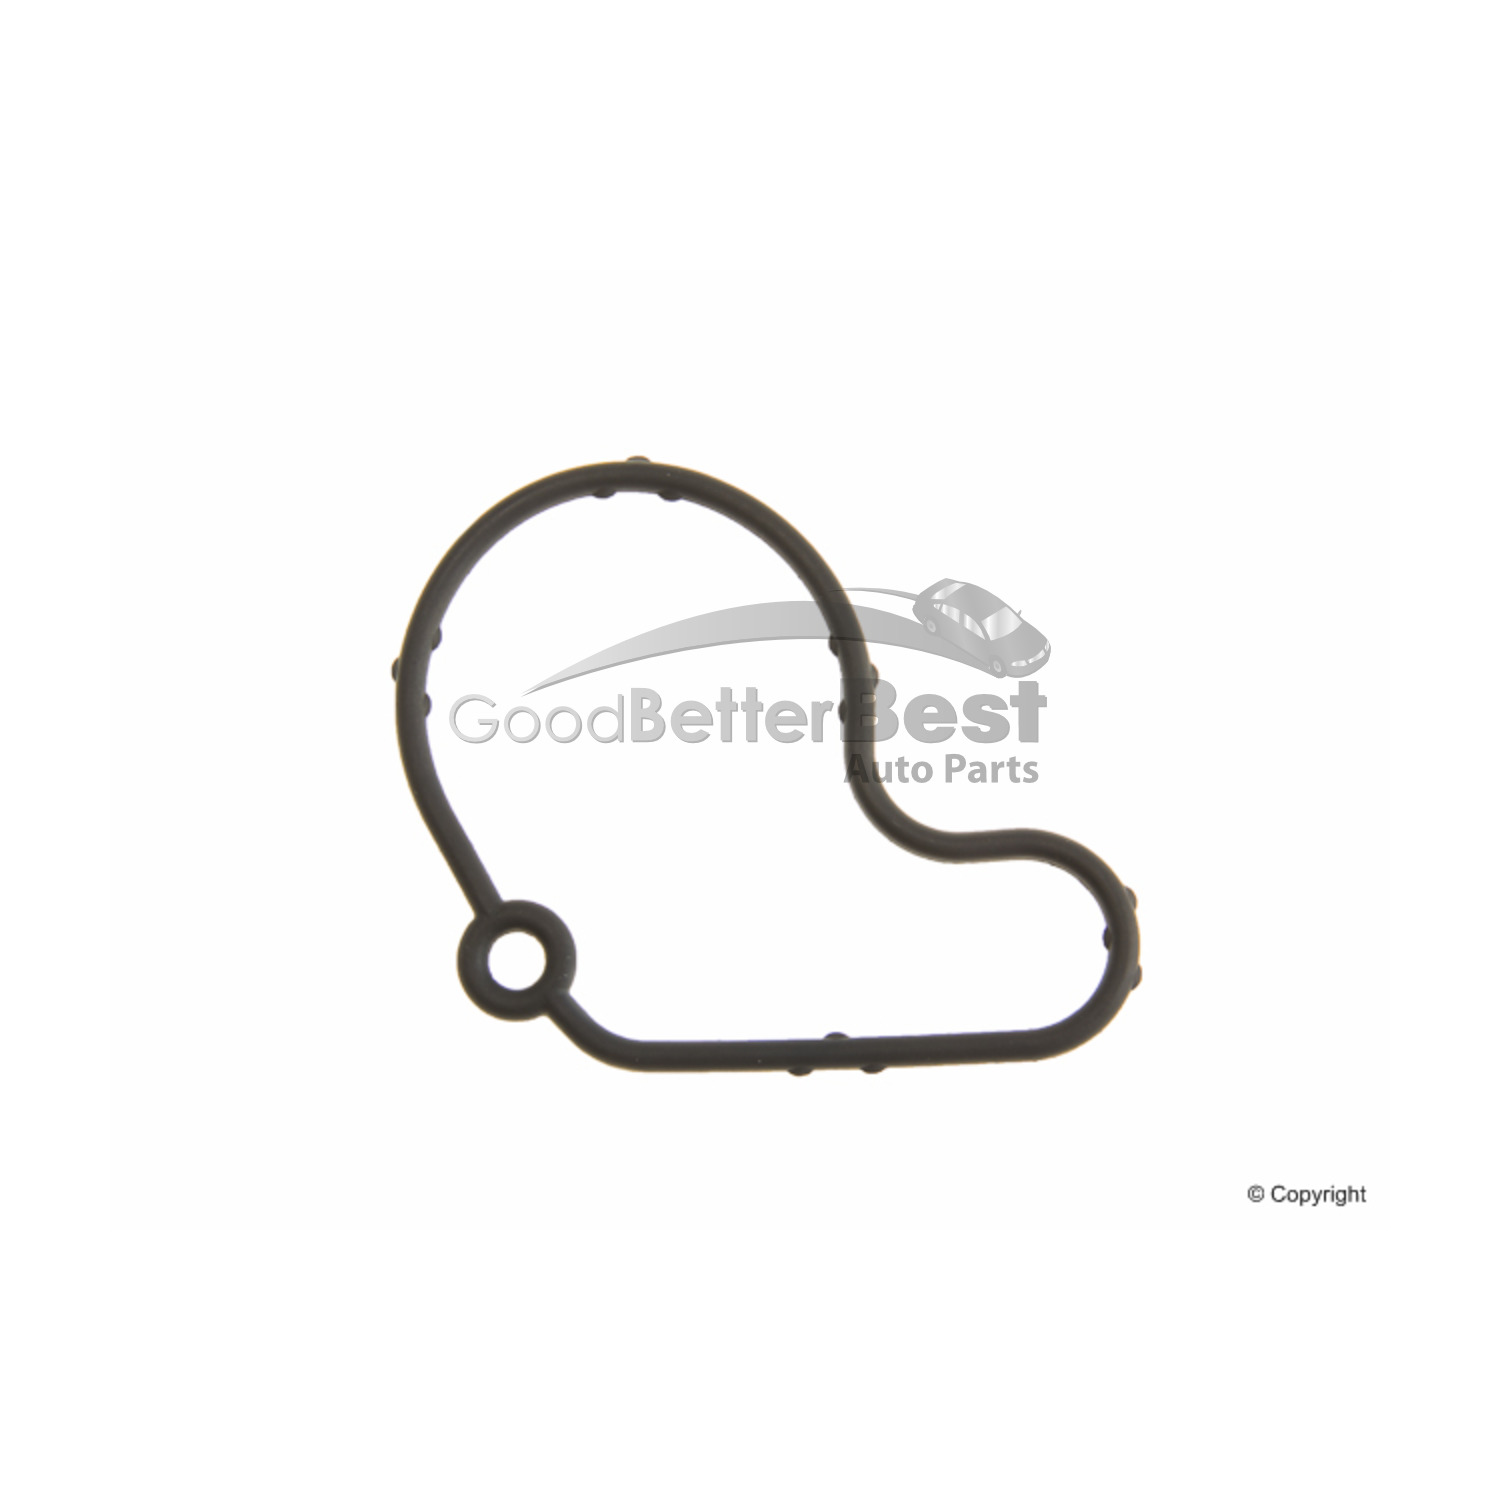 One New Genuine Vacuum Pump Gasket 038145345 for